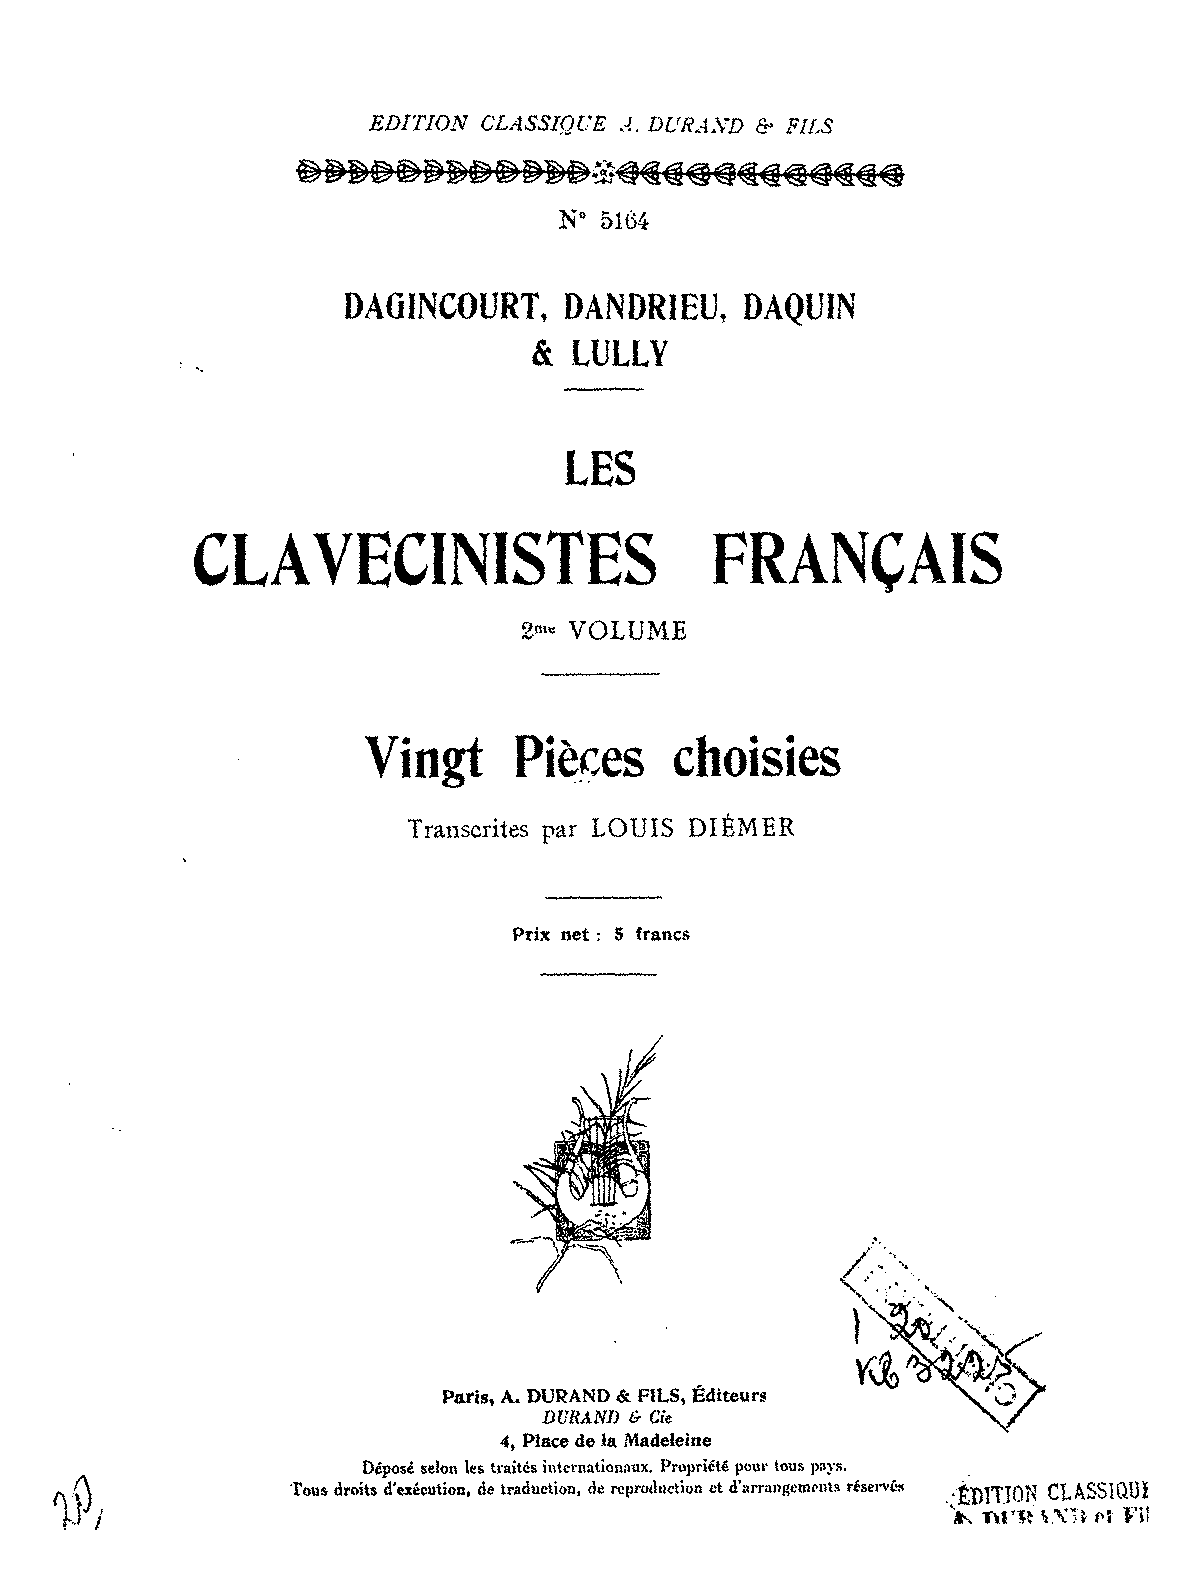 PMLP255219-Clavecainsitas francais vol 2 RSL.pdf